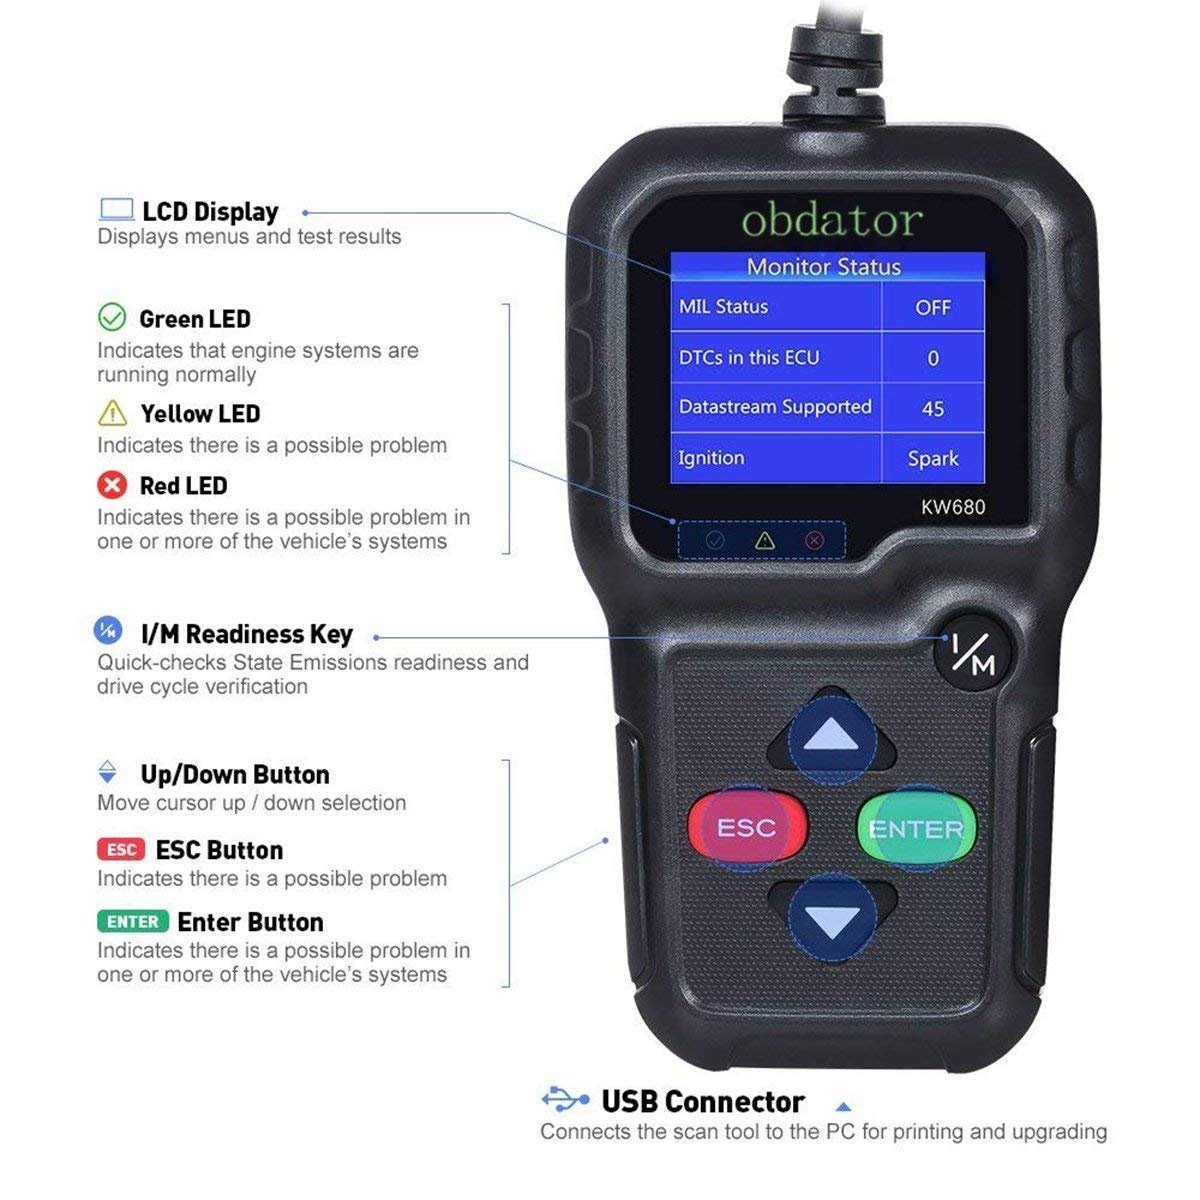 On-Board Monitoring Test O2 Sensor OBDATOR OBDII Automotive Code Reader KW680 OBD2 Diagnostic Full OBD2//EOBD Functions Car Scan Tool Vehicle Engine Fault Scanners with Extra BAT Check